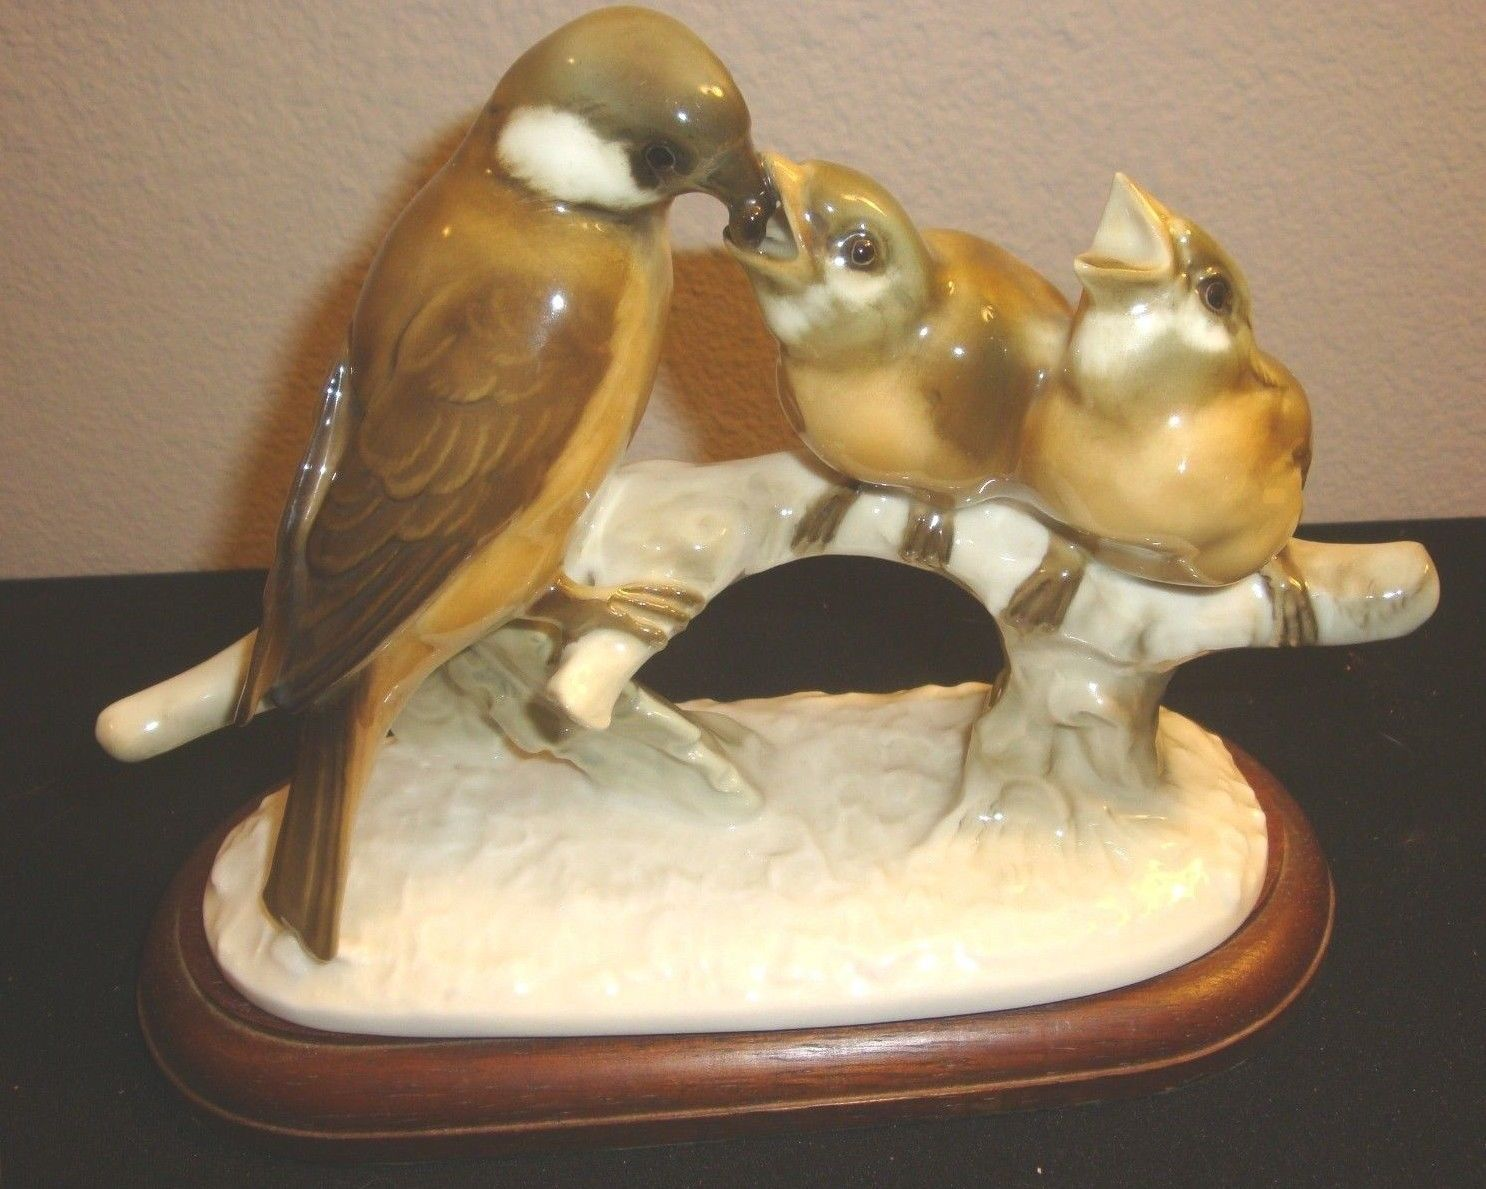 Hutschenreuther Porcelain Bird Group Figurine Mother Feeding Babies Chicks | eBay